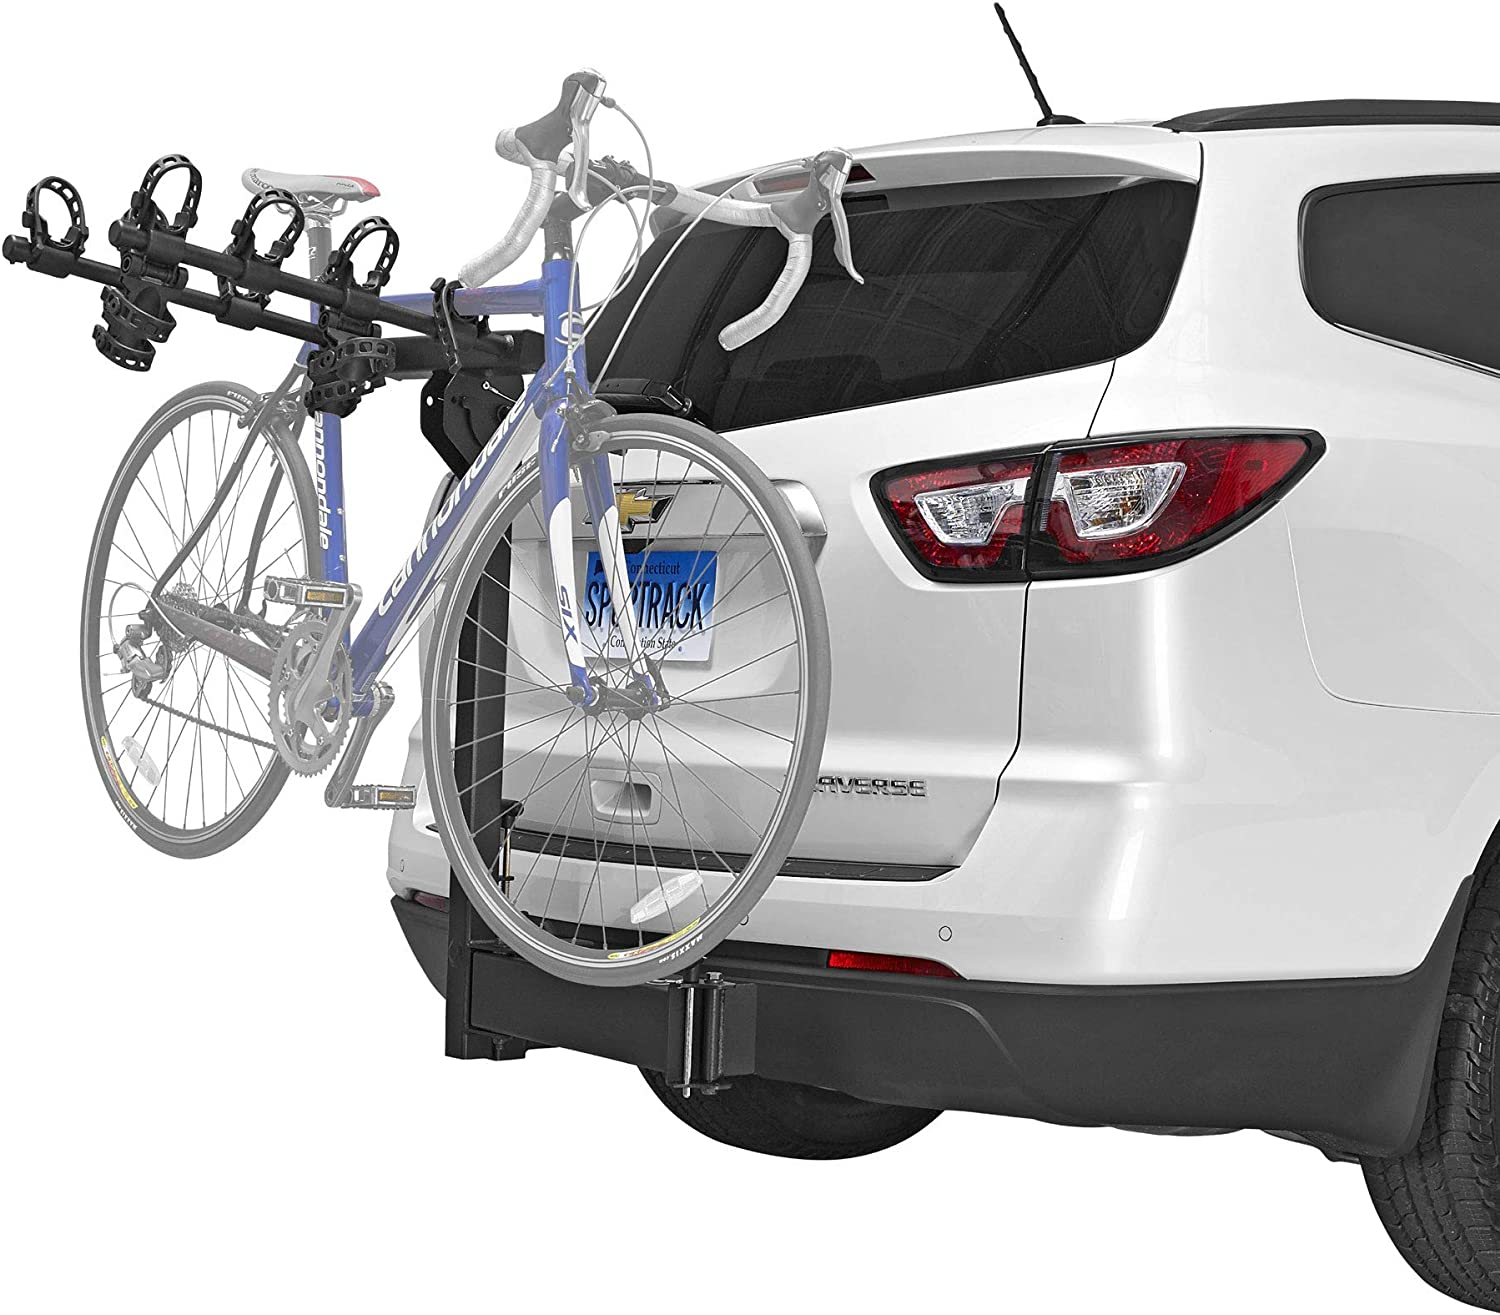 5. SportRack Ridge Swing Bike Rack